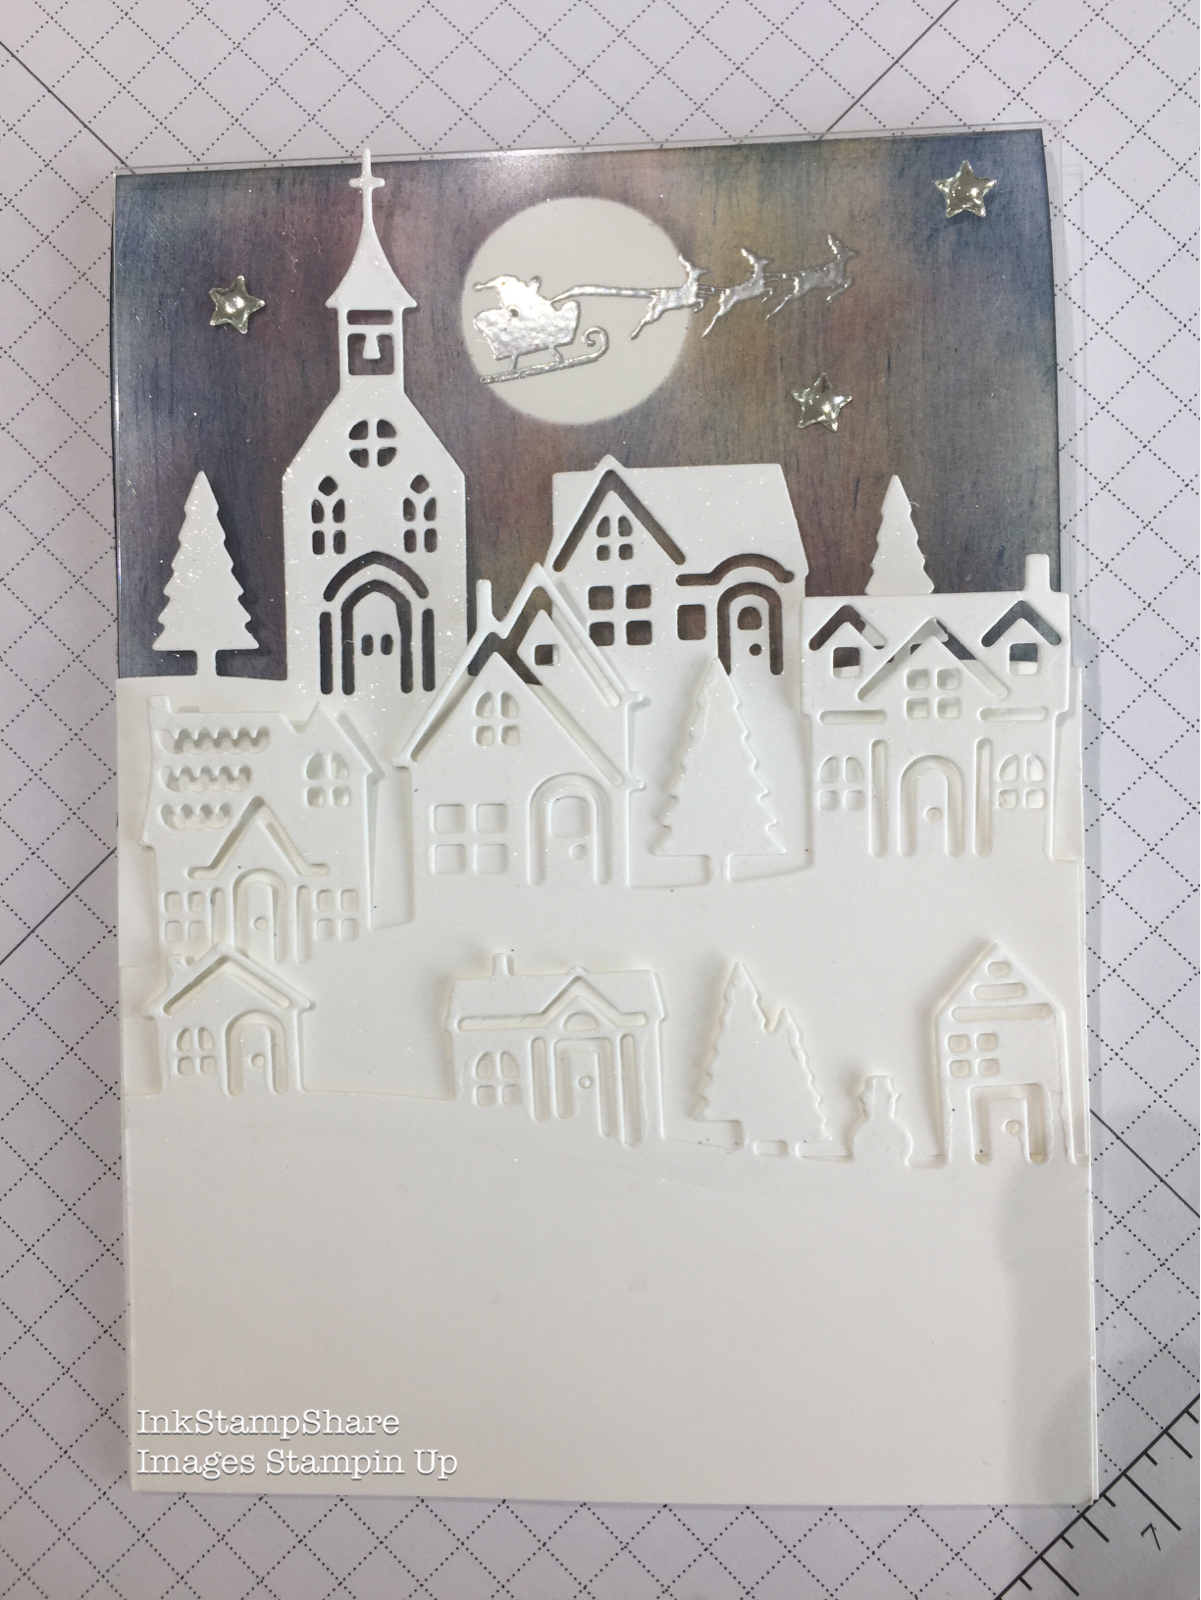 inkstampshare inspireeateallenges 002 hearts e home